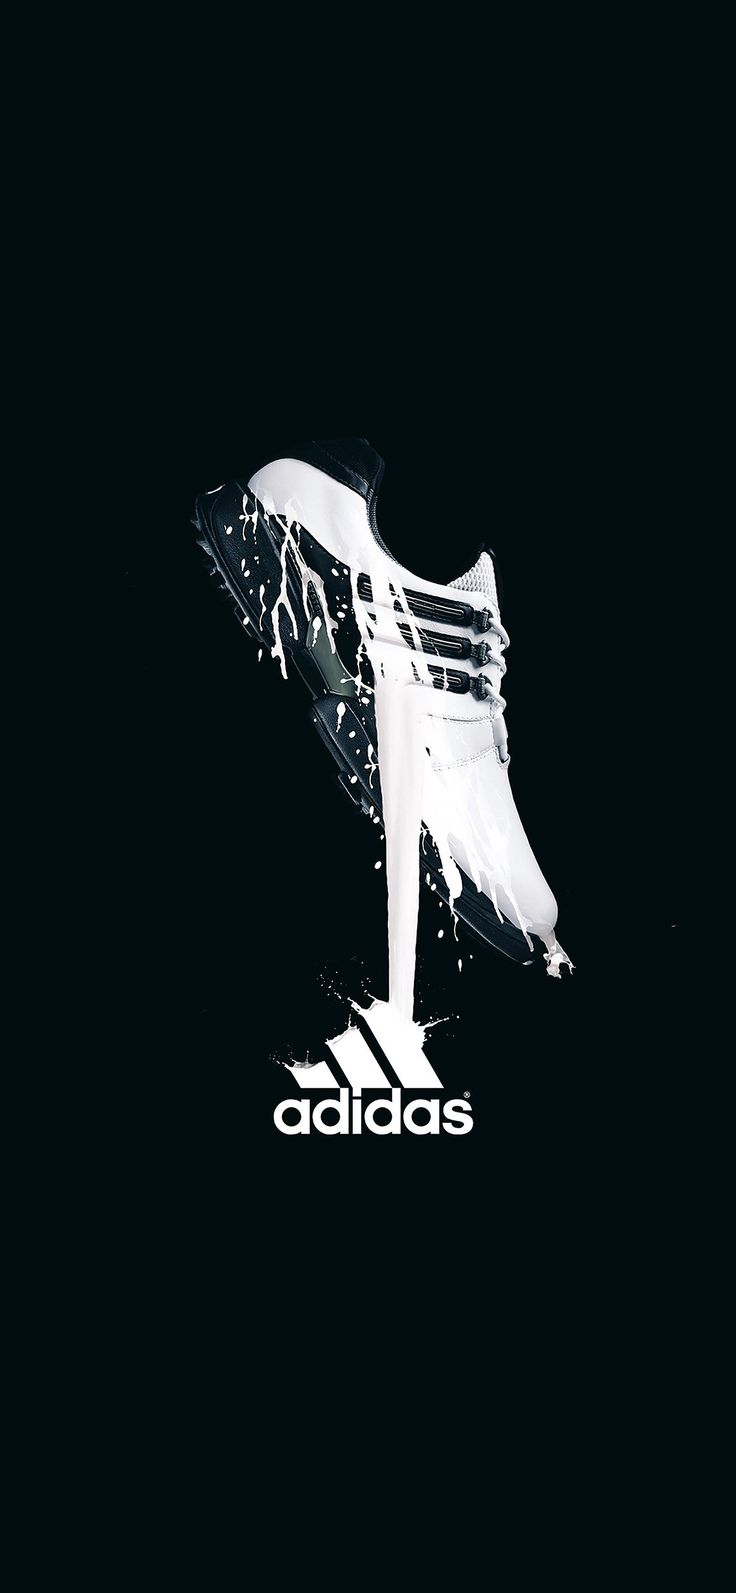 Adidas Wallpapers For Iphone X Adidas Iphone Wallpaper Adidas